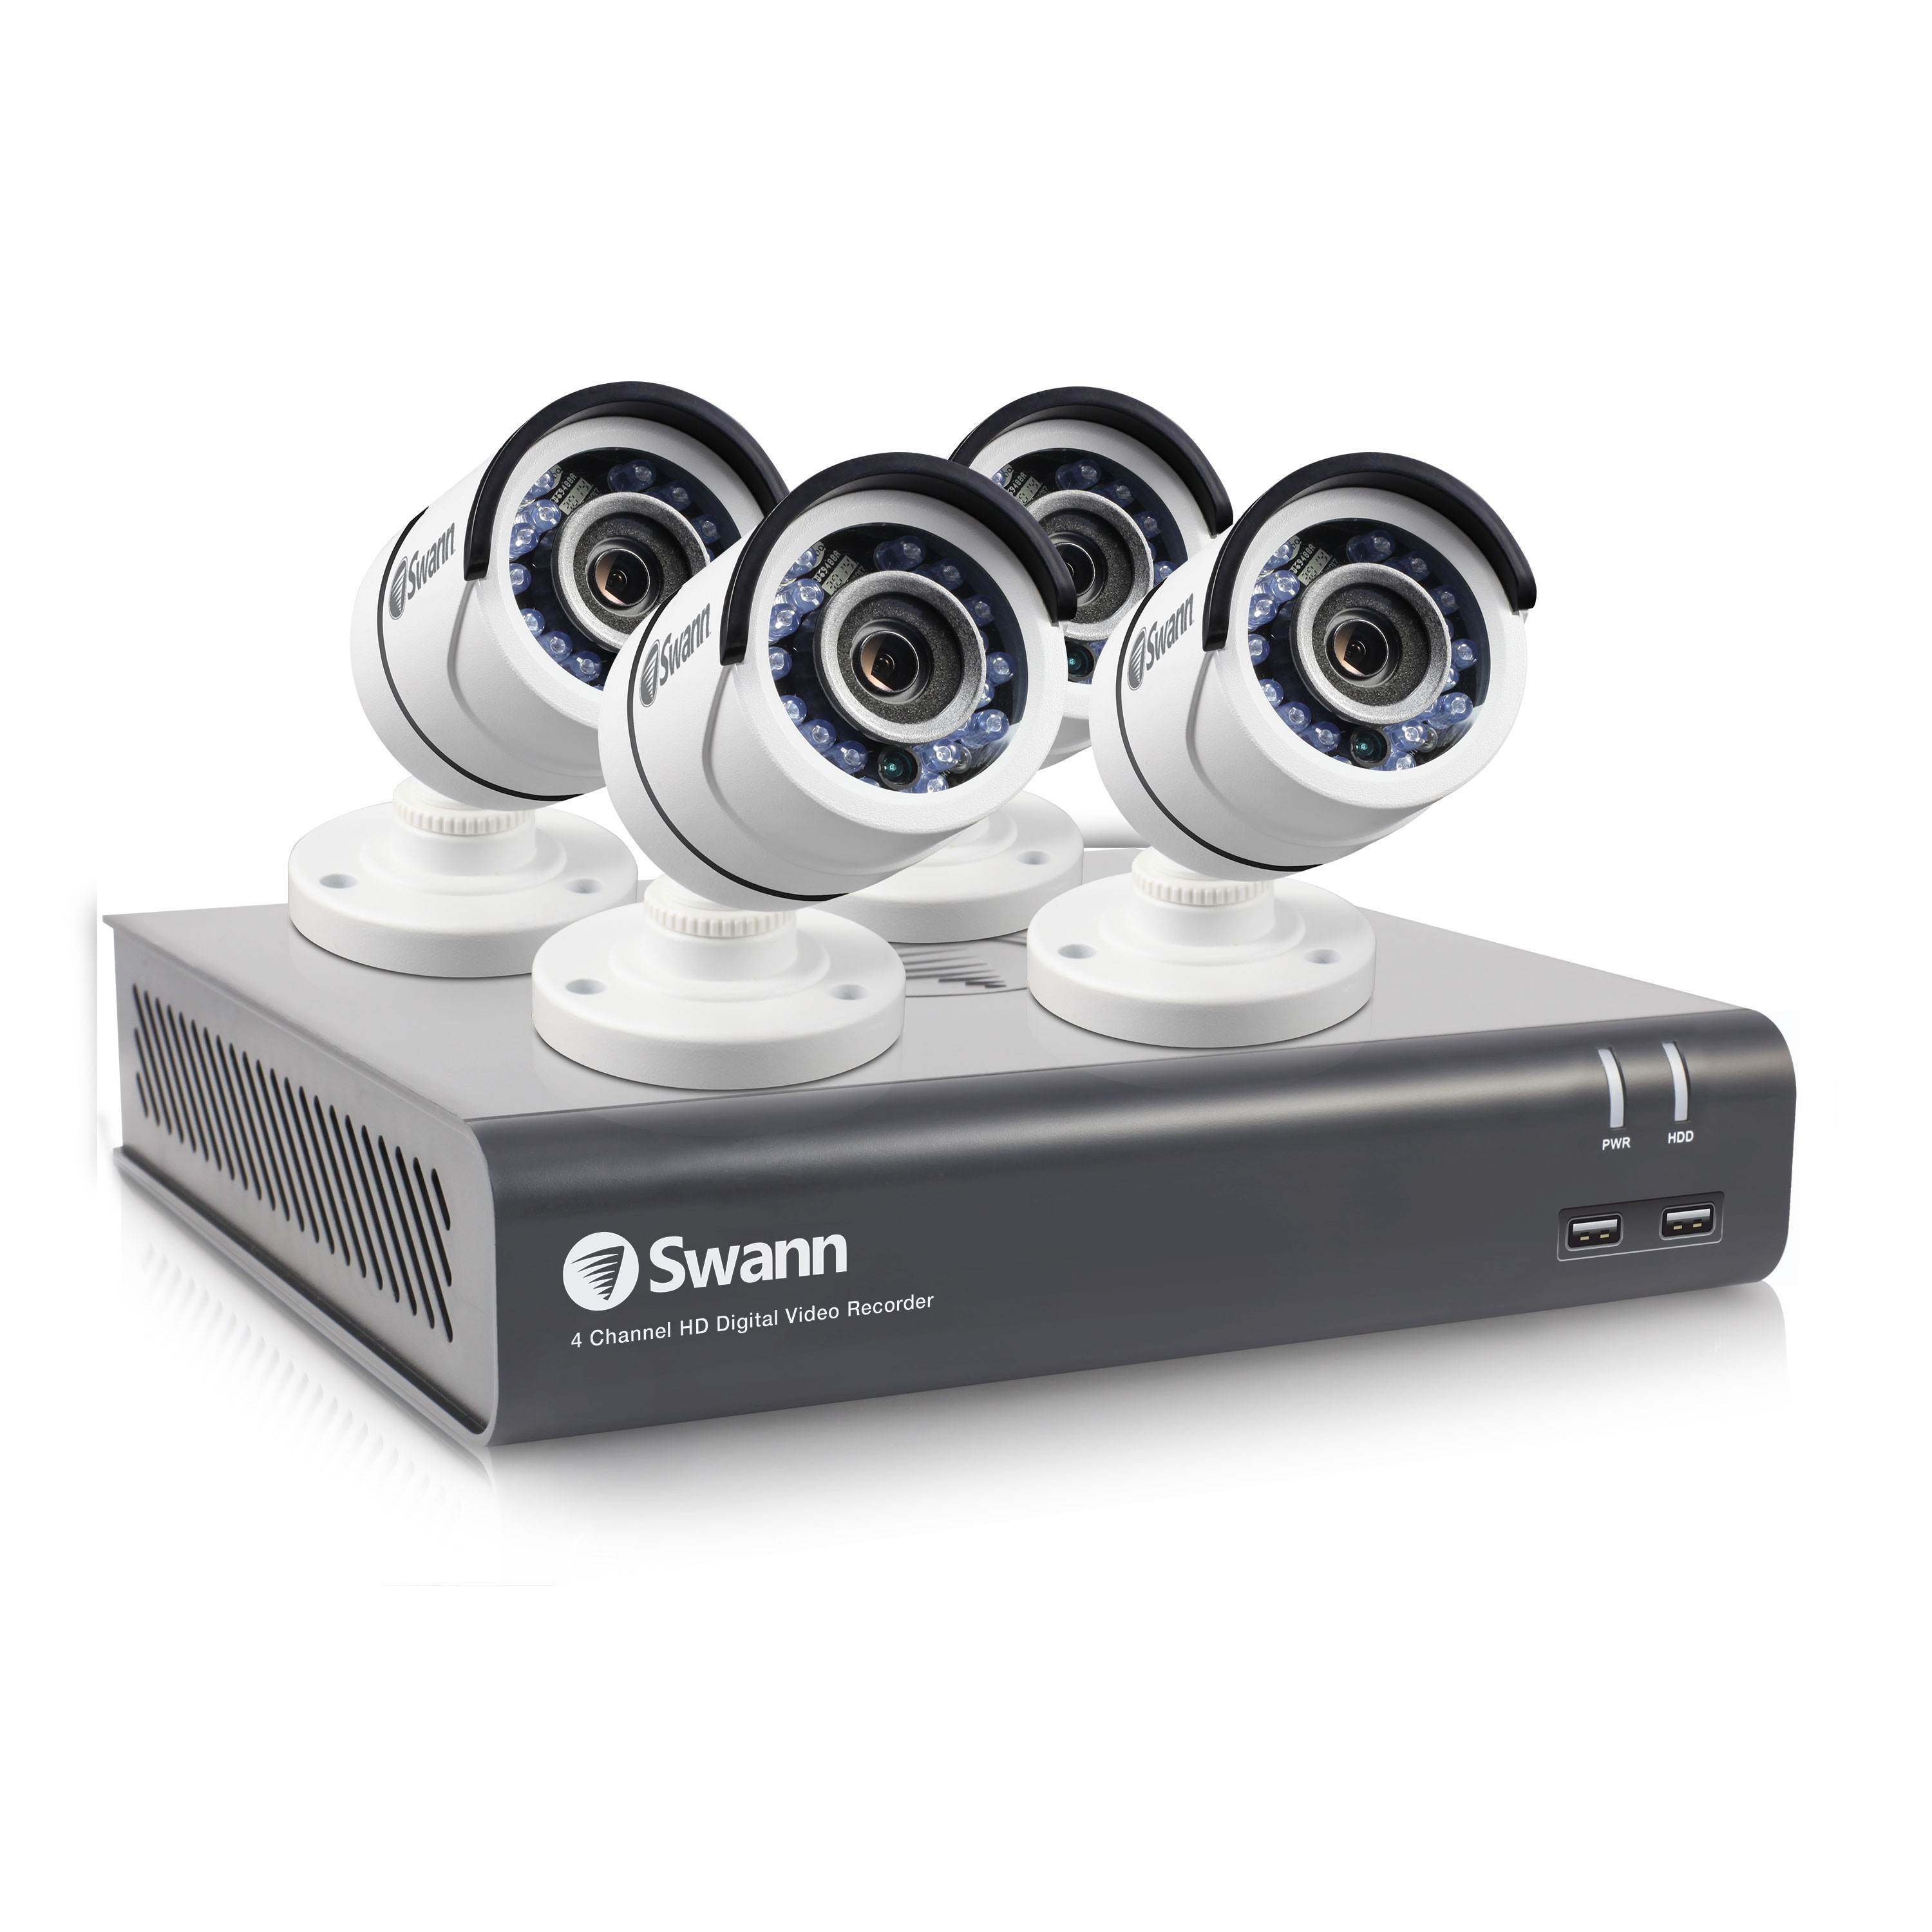 SWDVK-445954 Swann 4 Channel Security System: 1080p Full HD DVR-4575 with 1TB HDD & 4 x 1080p Bullet Cameras PRO-T852 -